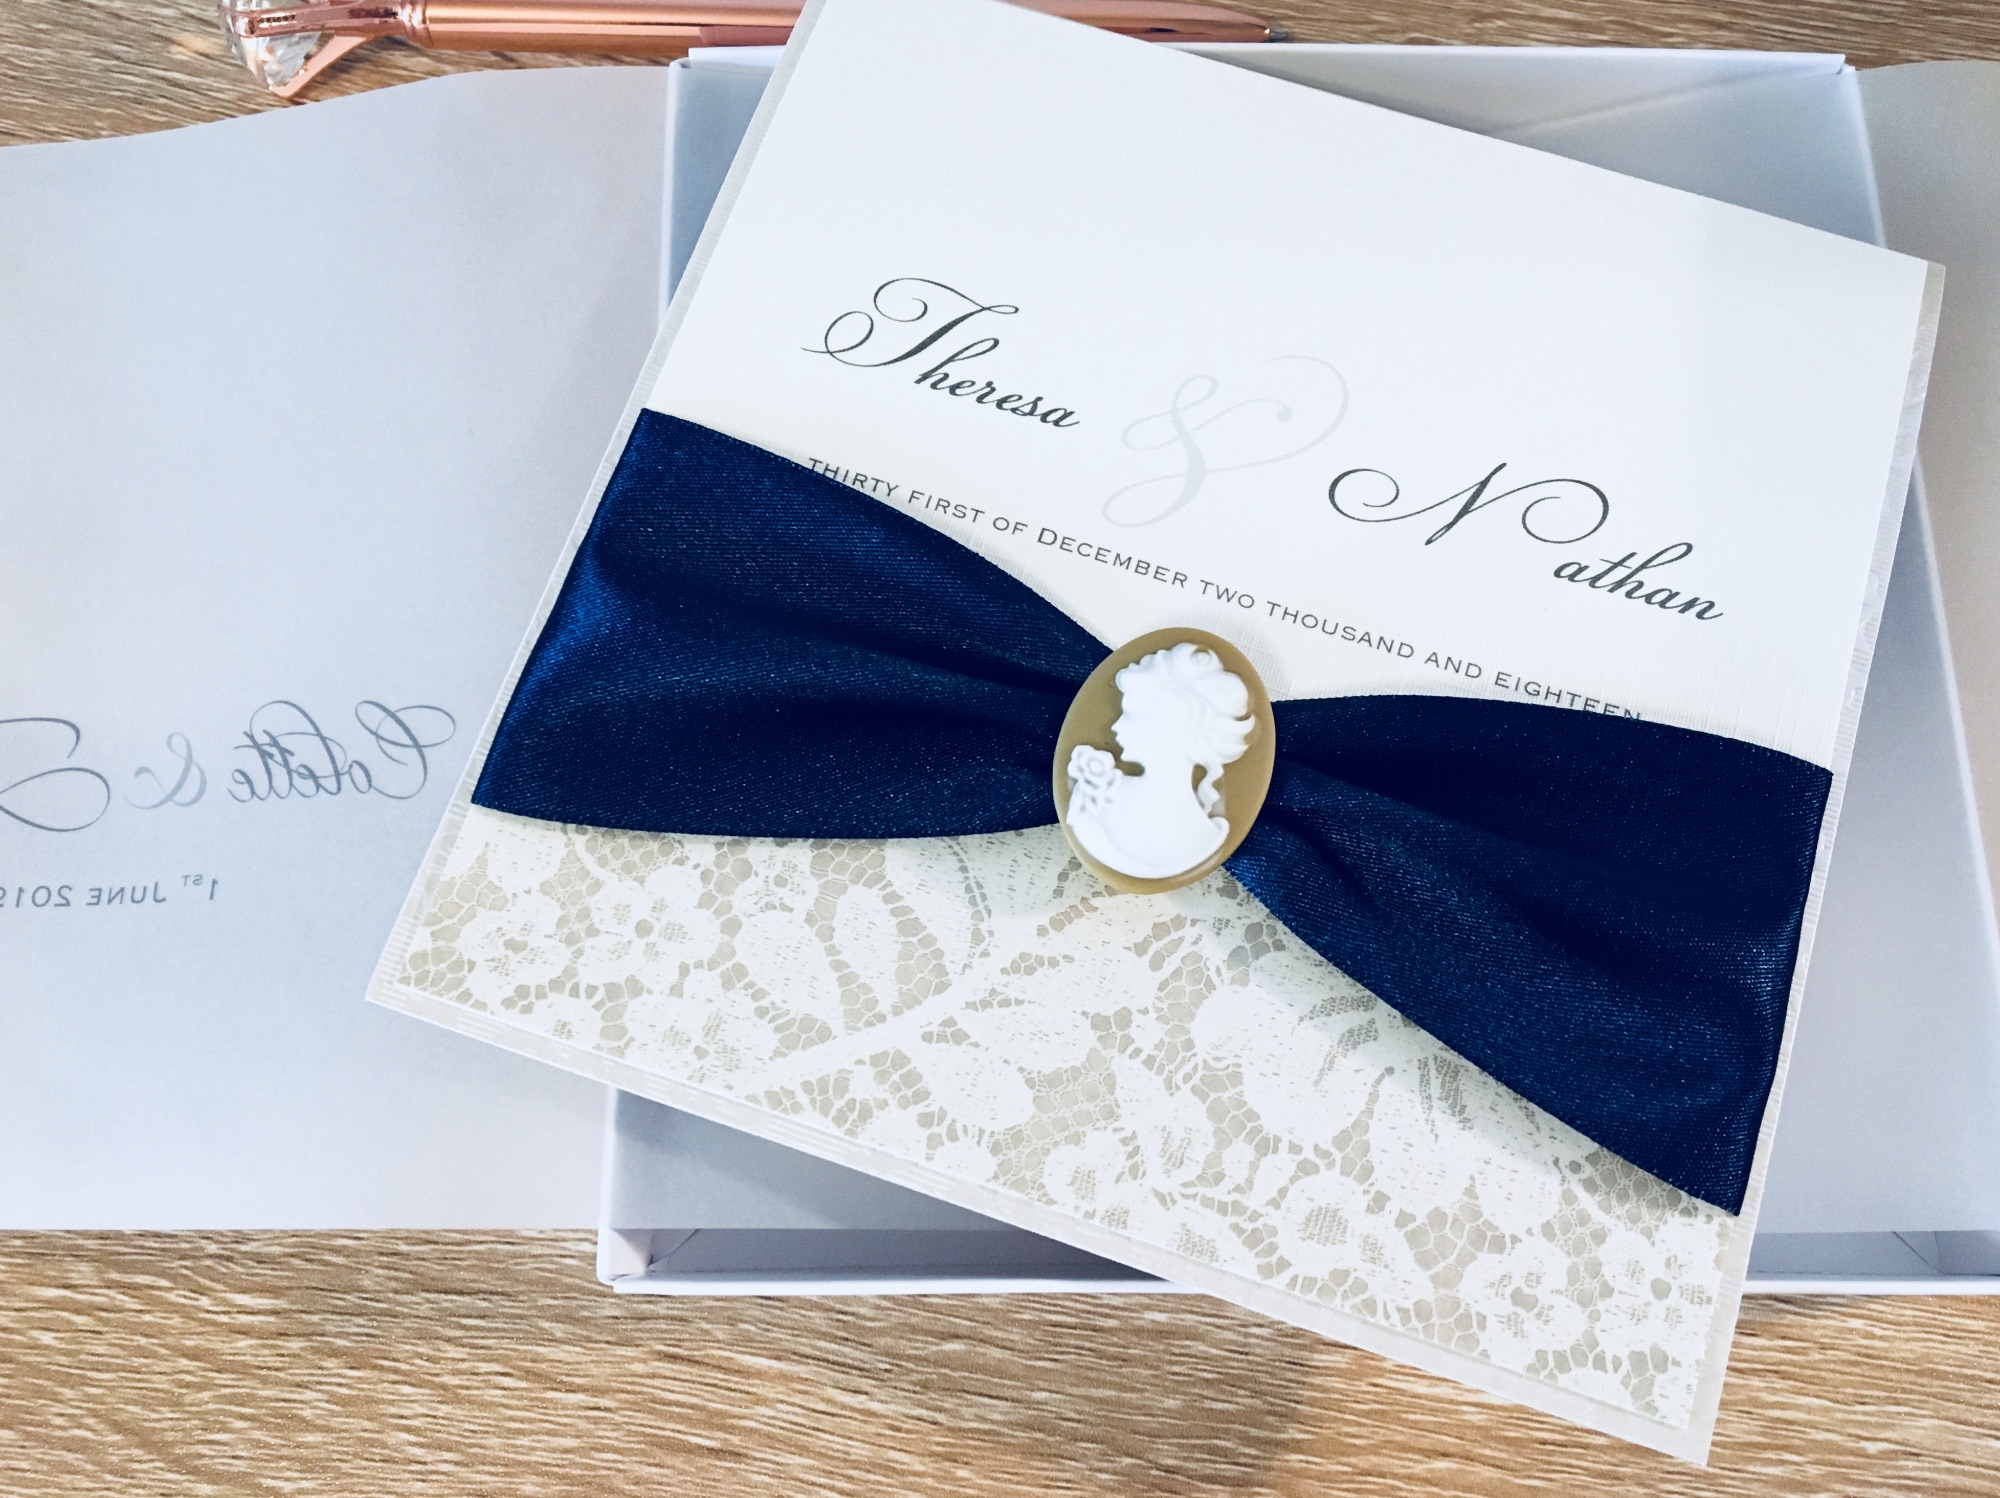 Cameo wedding invitation in box with navy ribbon